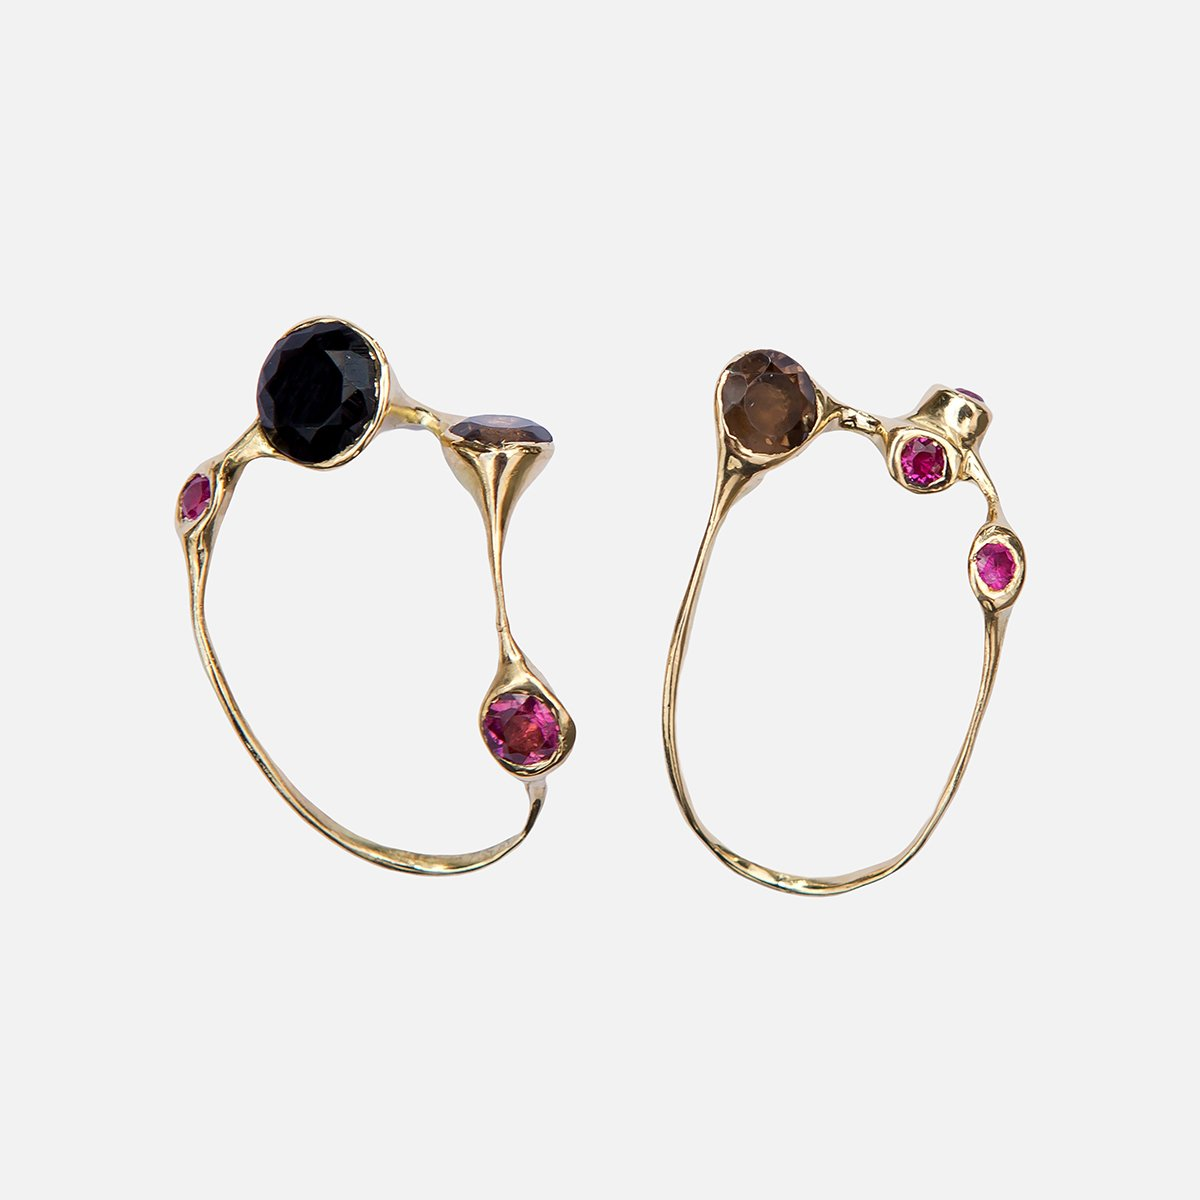 Flor Pequeno Earrings